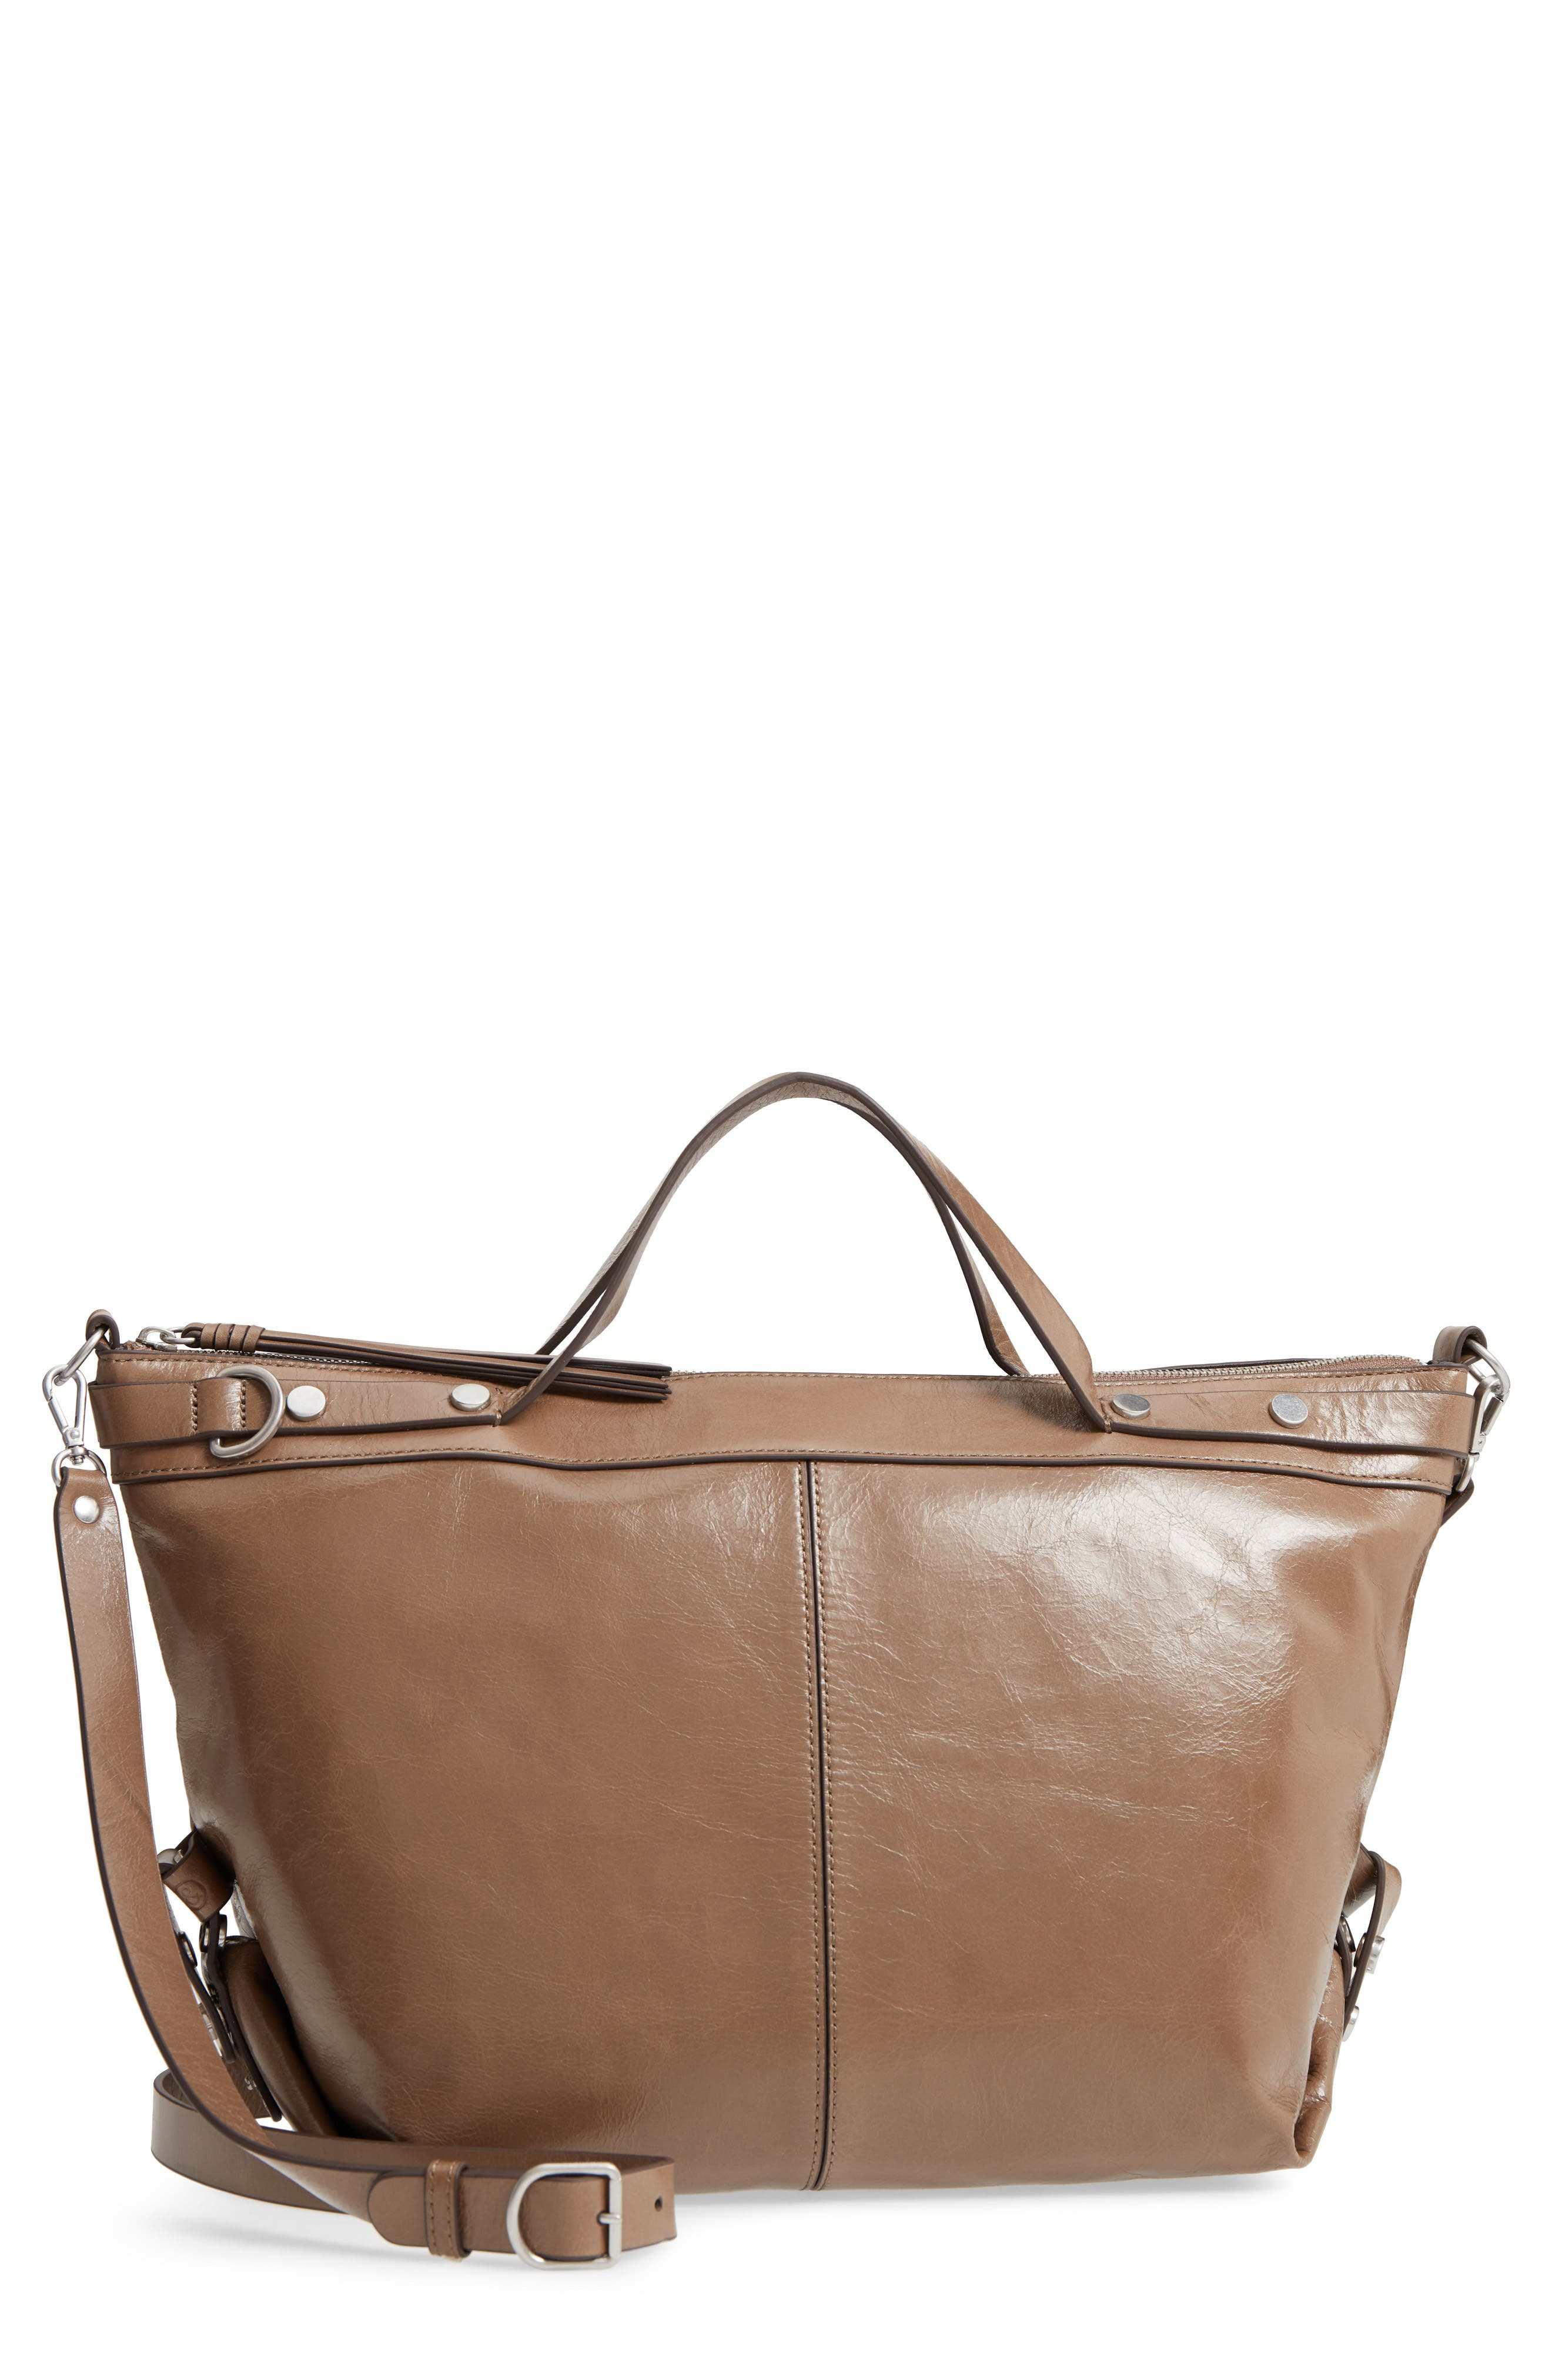 Perry Glazed Leather Convertible Satchel,                             Main thumbnail 1, color,                             BEIGE BISCUIT